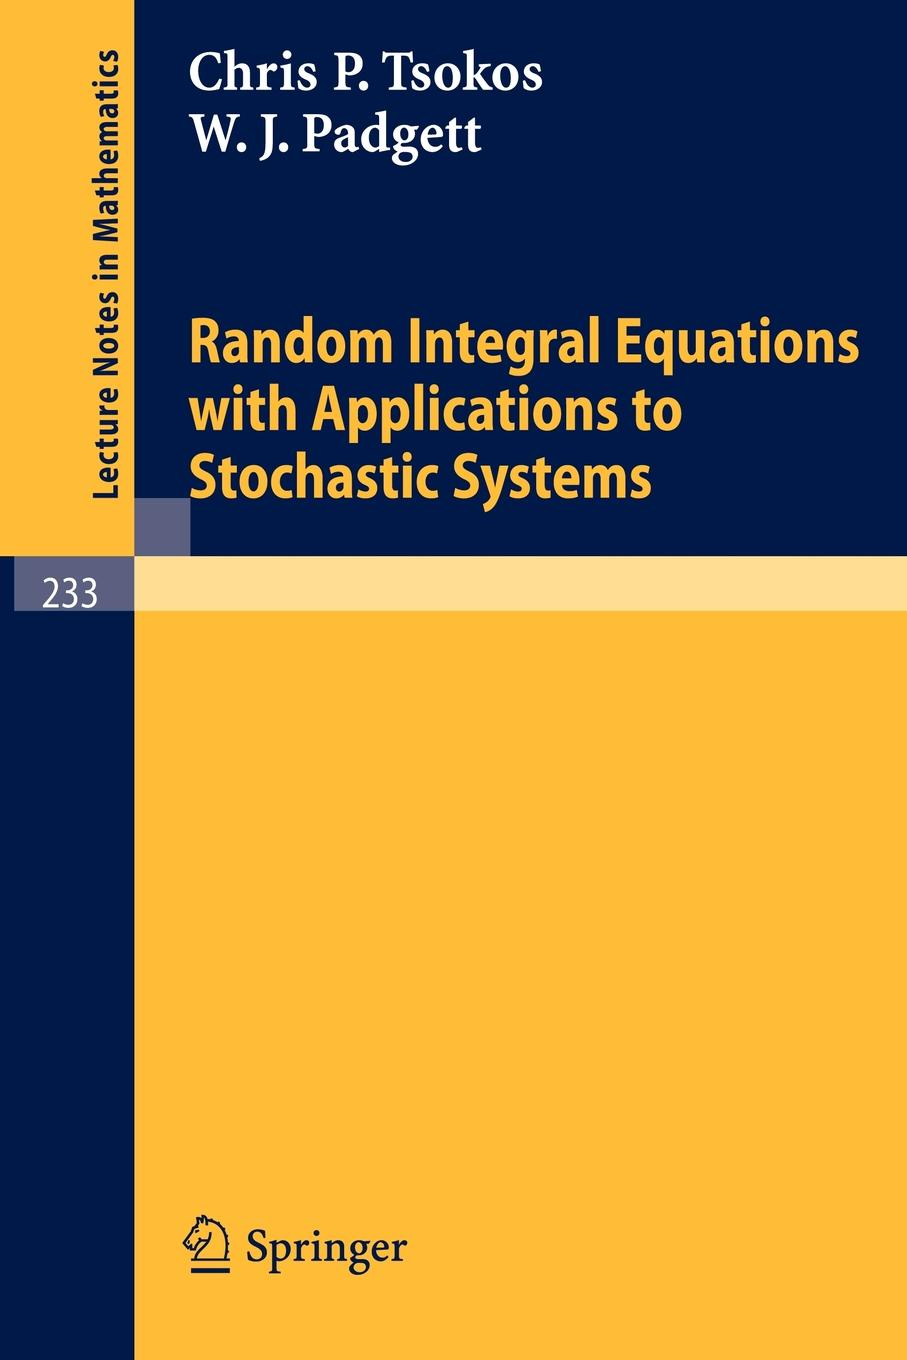 C. P. Tsokos, W. J. Padgett Random Integral Equations with Applications to Stochastic Systems